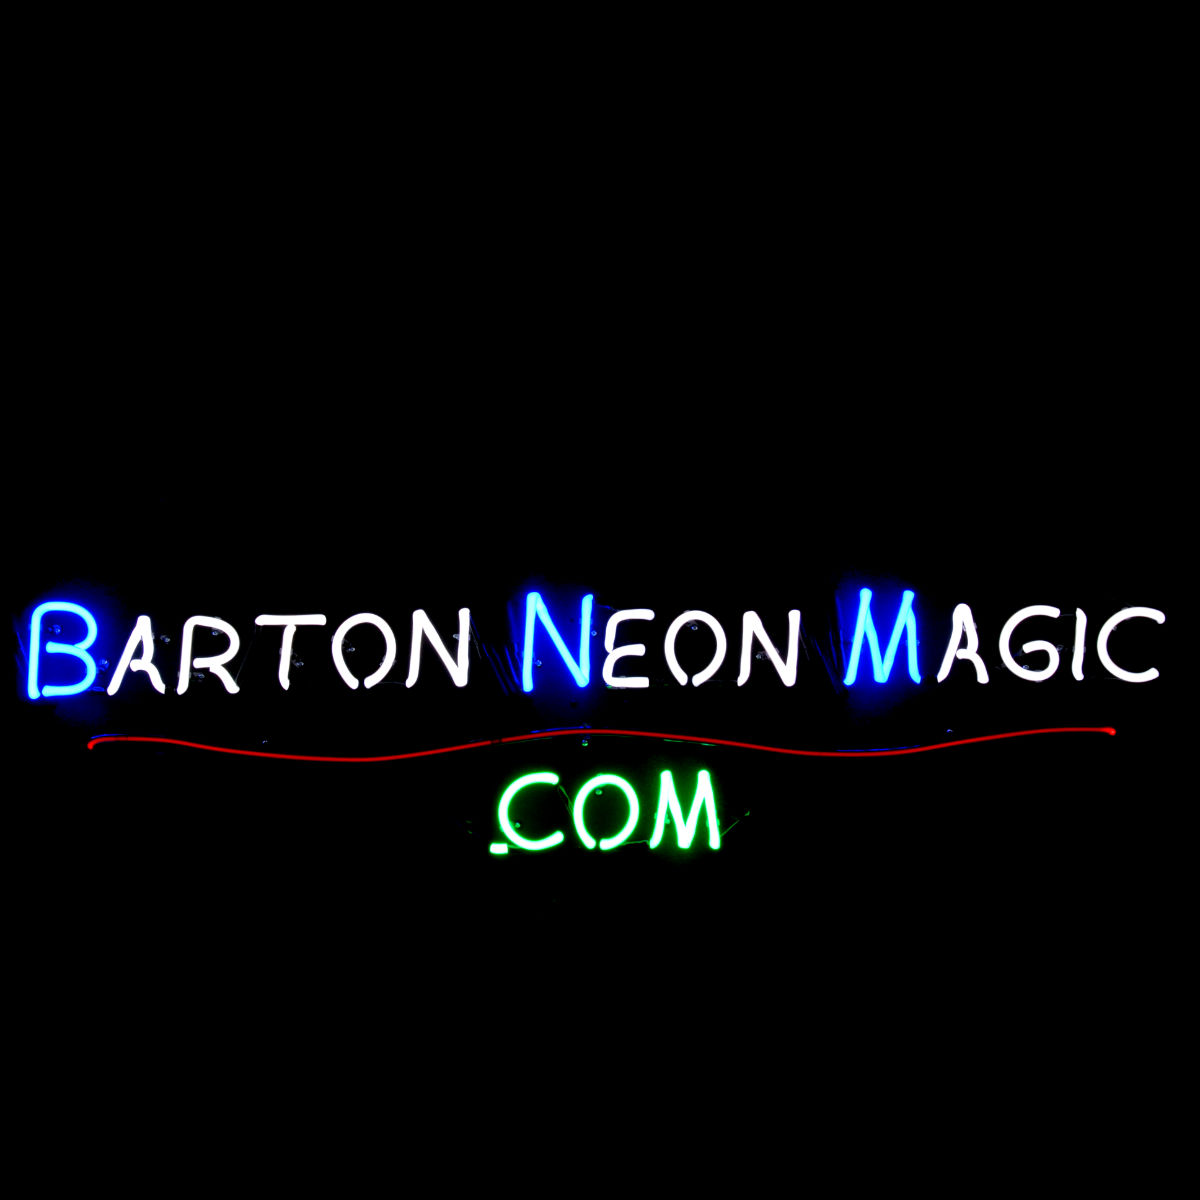 BartonNeonMagic - Finest Quality Custom Neon Lighting by John Barton - Internationally Famous USA Neon Glass Artist